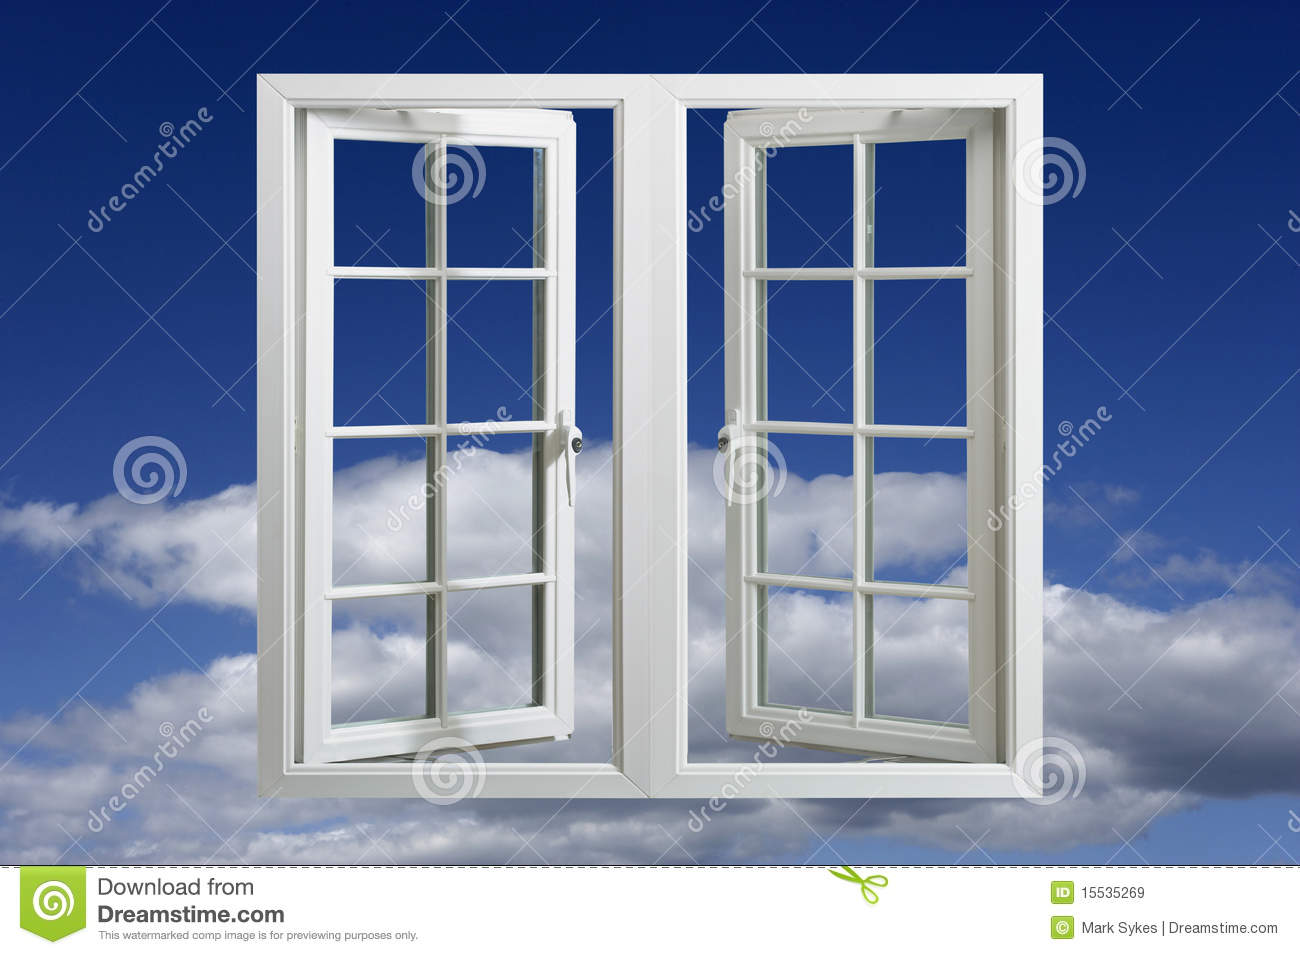 Modern plastic pvc window floating in blue sky royalty for Window plastic